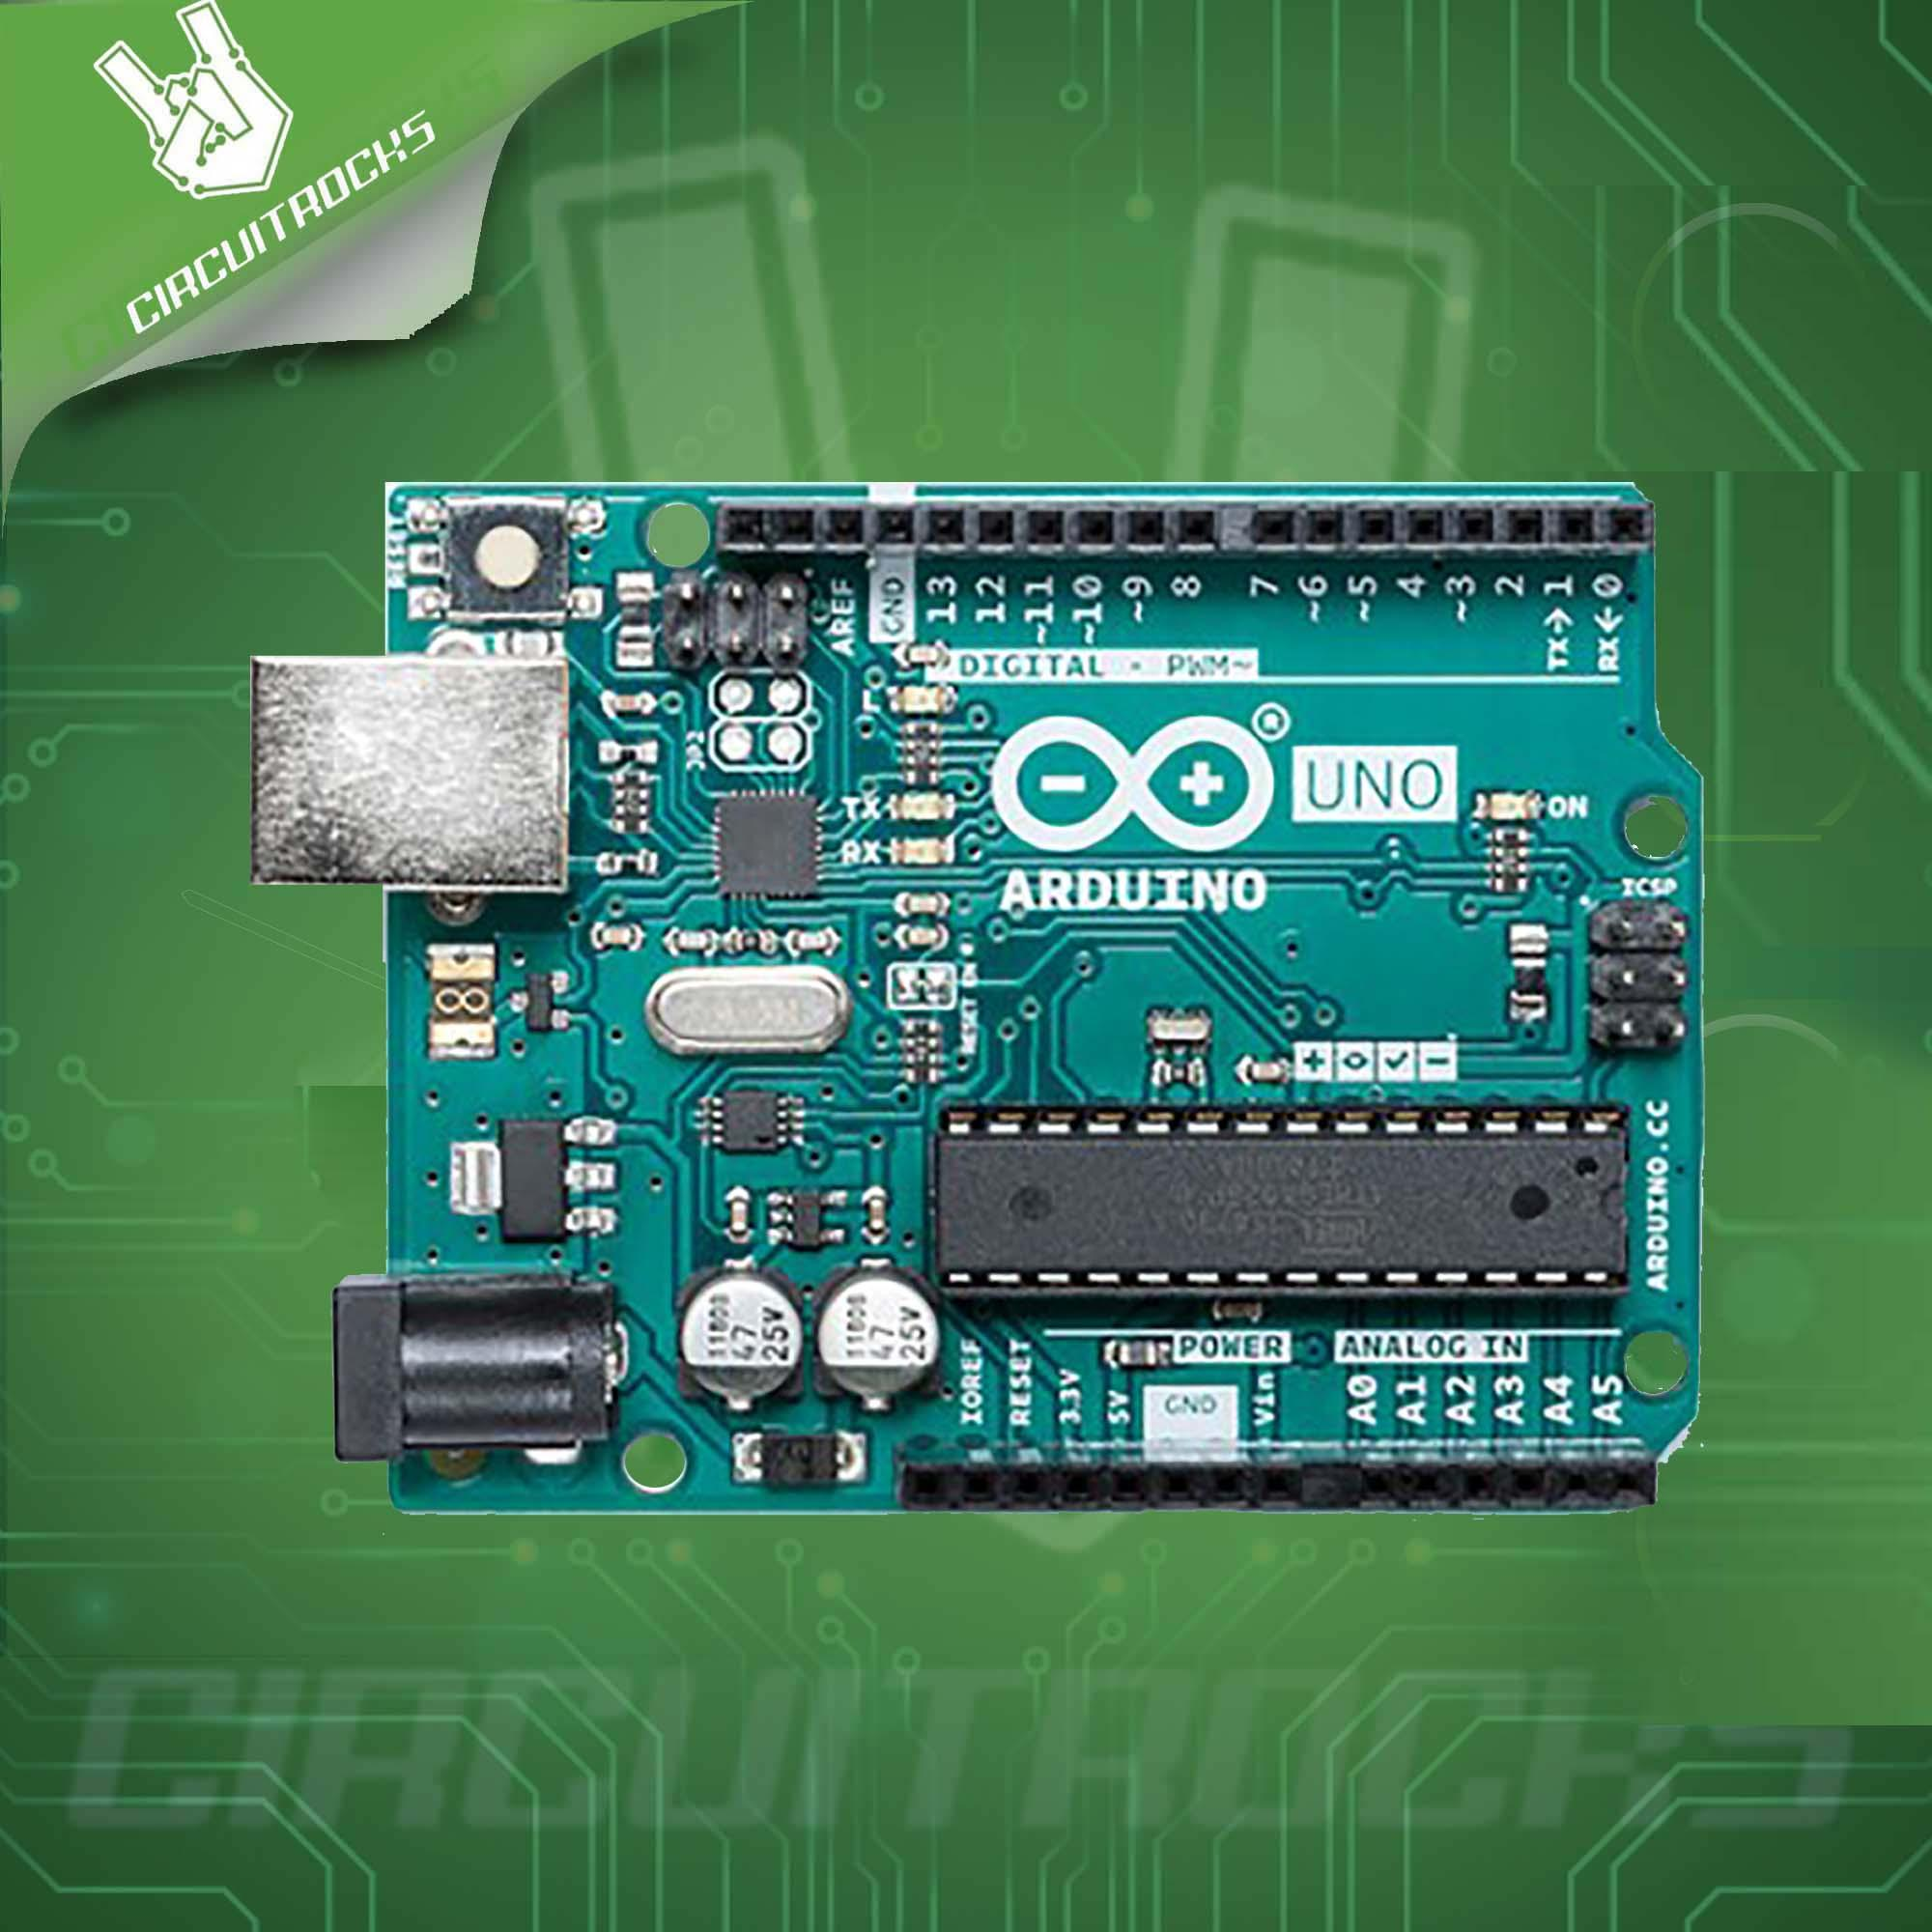 Arduino Philippines Price List Motherboard For Sale Lazada Shift Register Lcd With 74hc595 8211 Part 1 Uno R3 Made In Italy Original